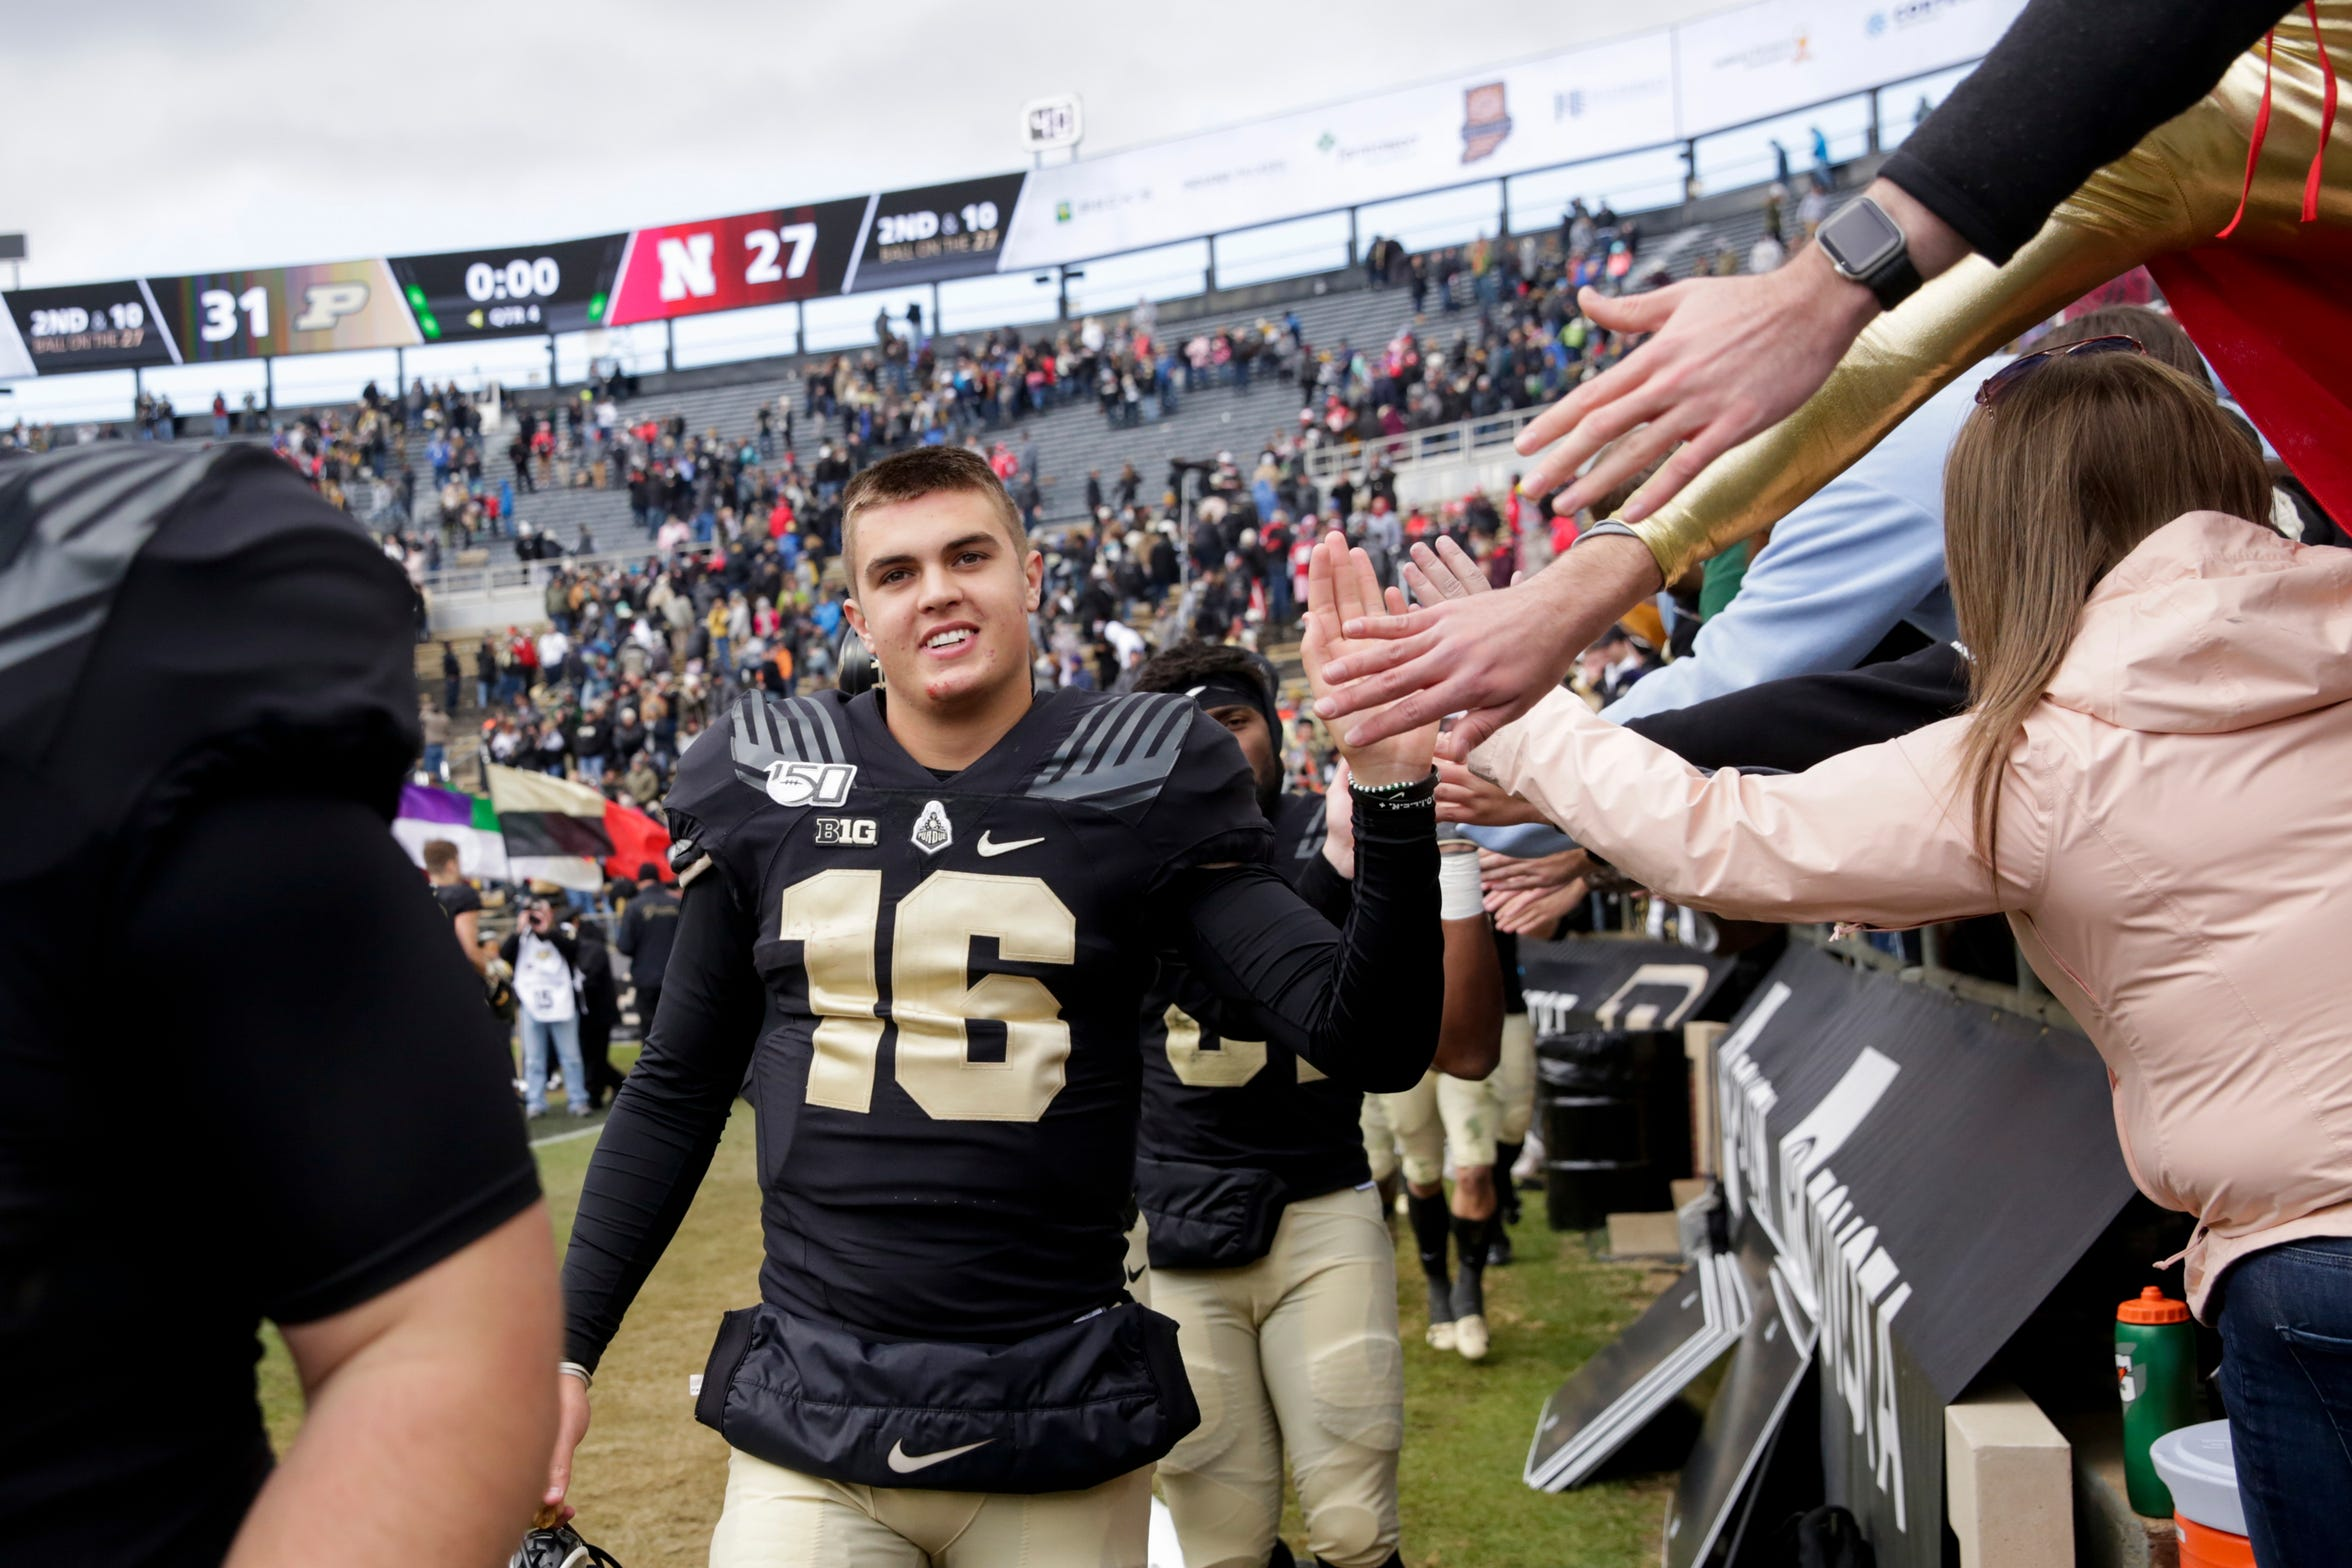 Purdue quarterback Aidan O'Connell (16) celebrates with fans after defeating Nebraska, 31-27, Saturday, Nov. 2, 2019 at Ross-Ade Stadium in West Lafayette.